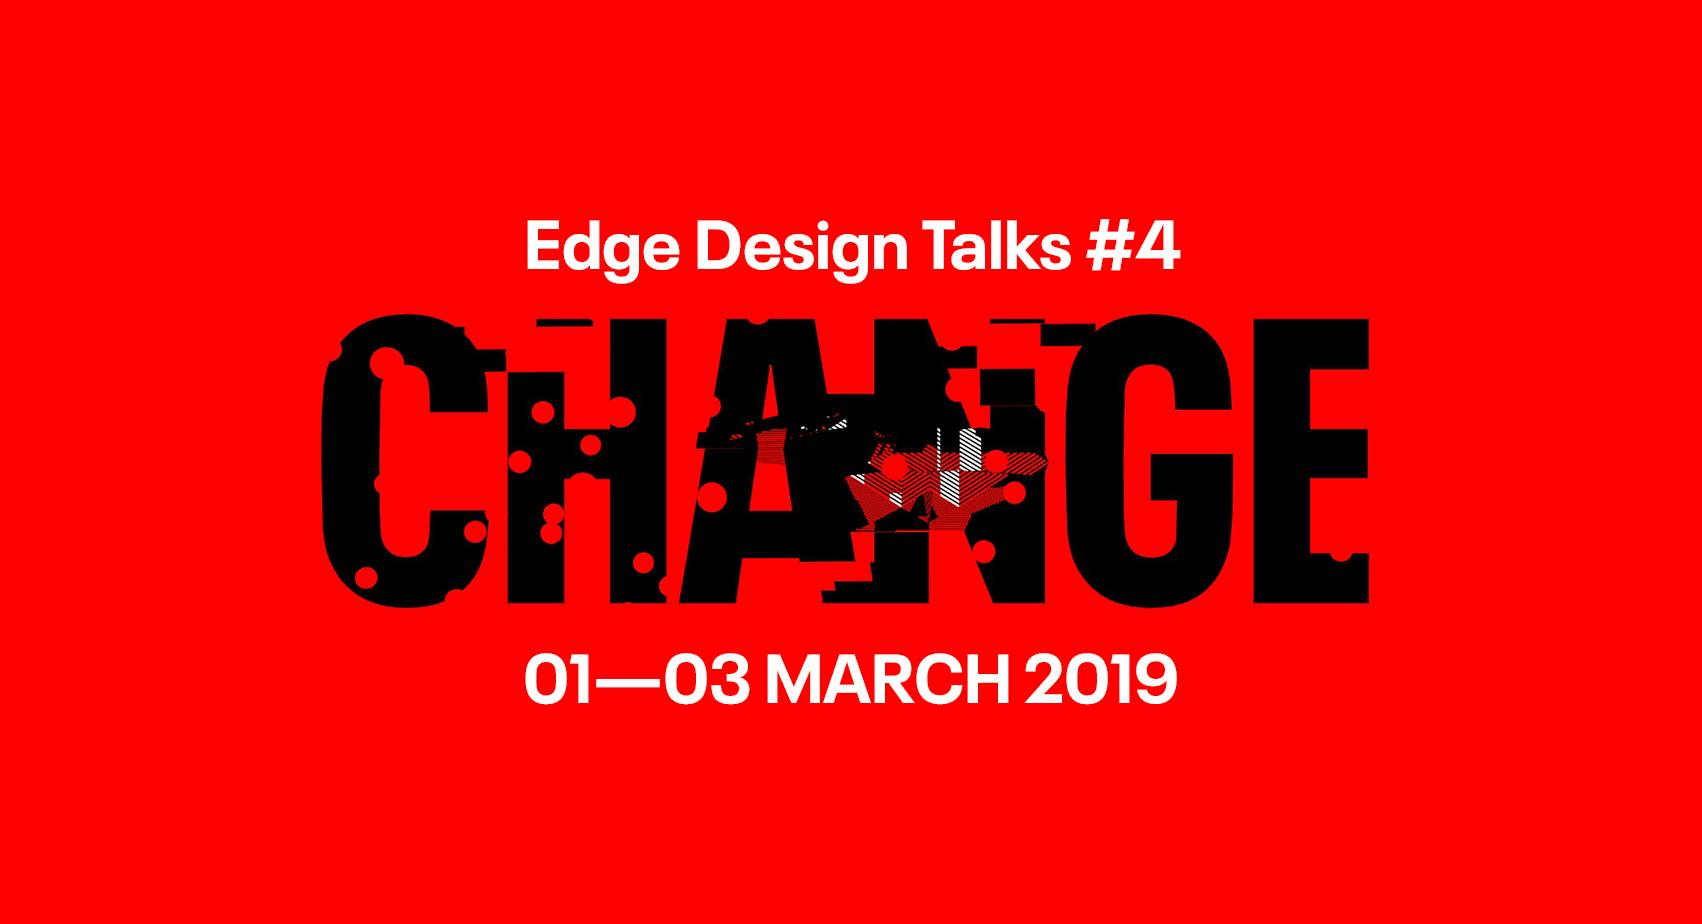 Edge Design Talks #4 – Movie Screening